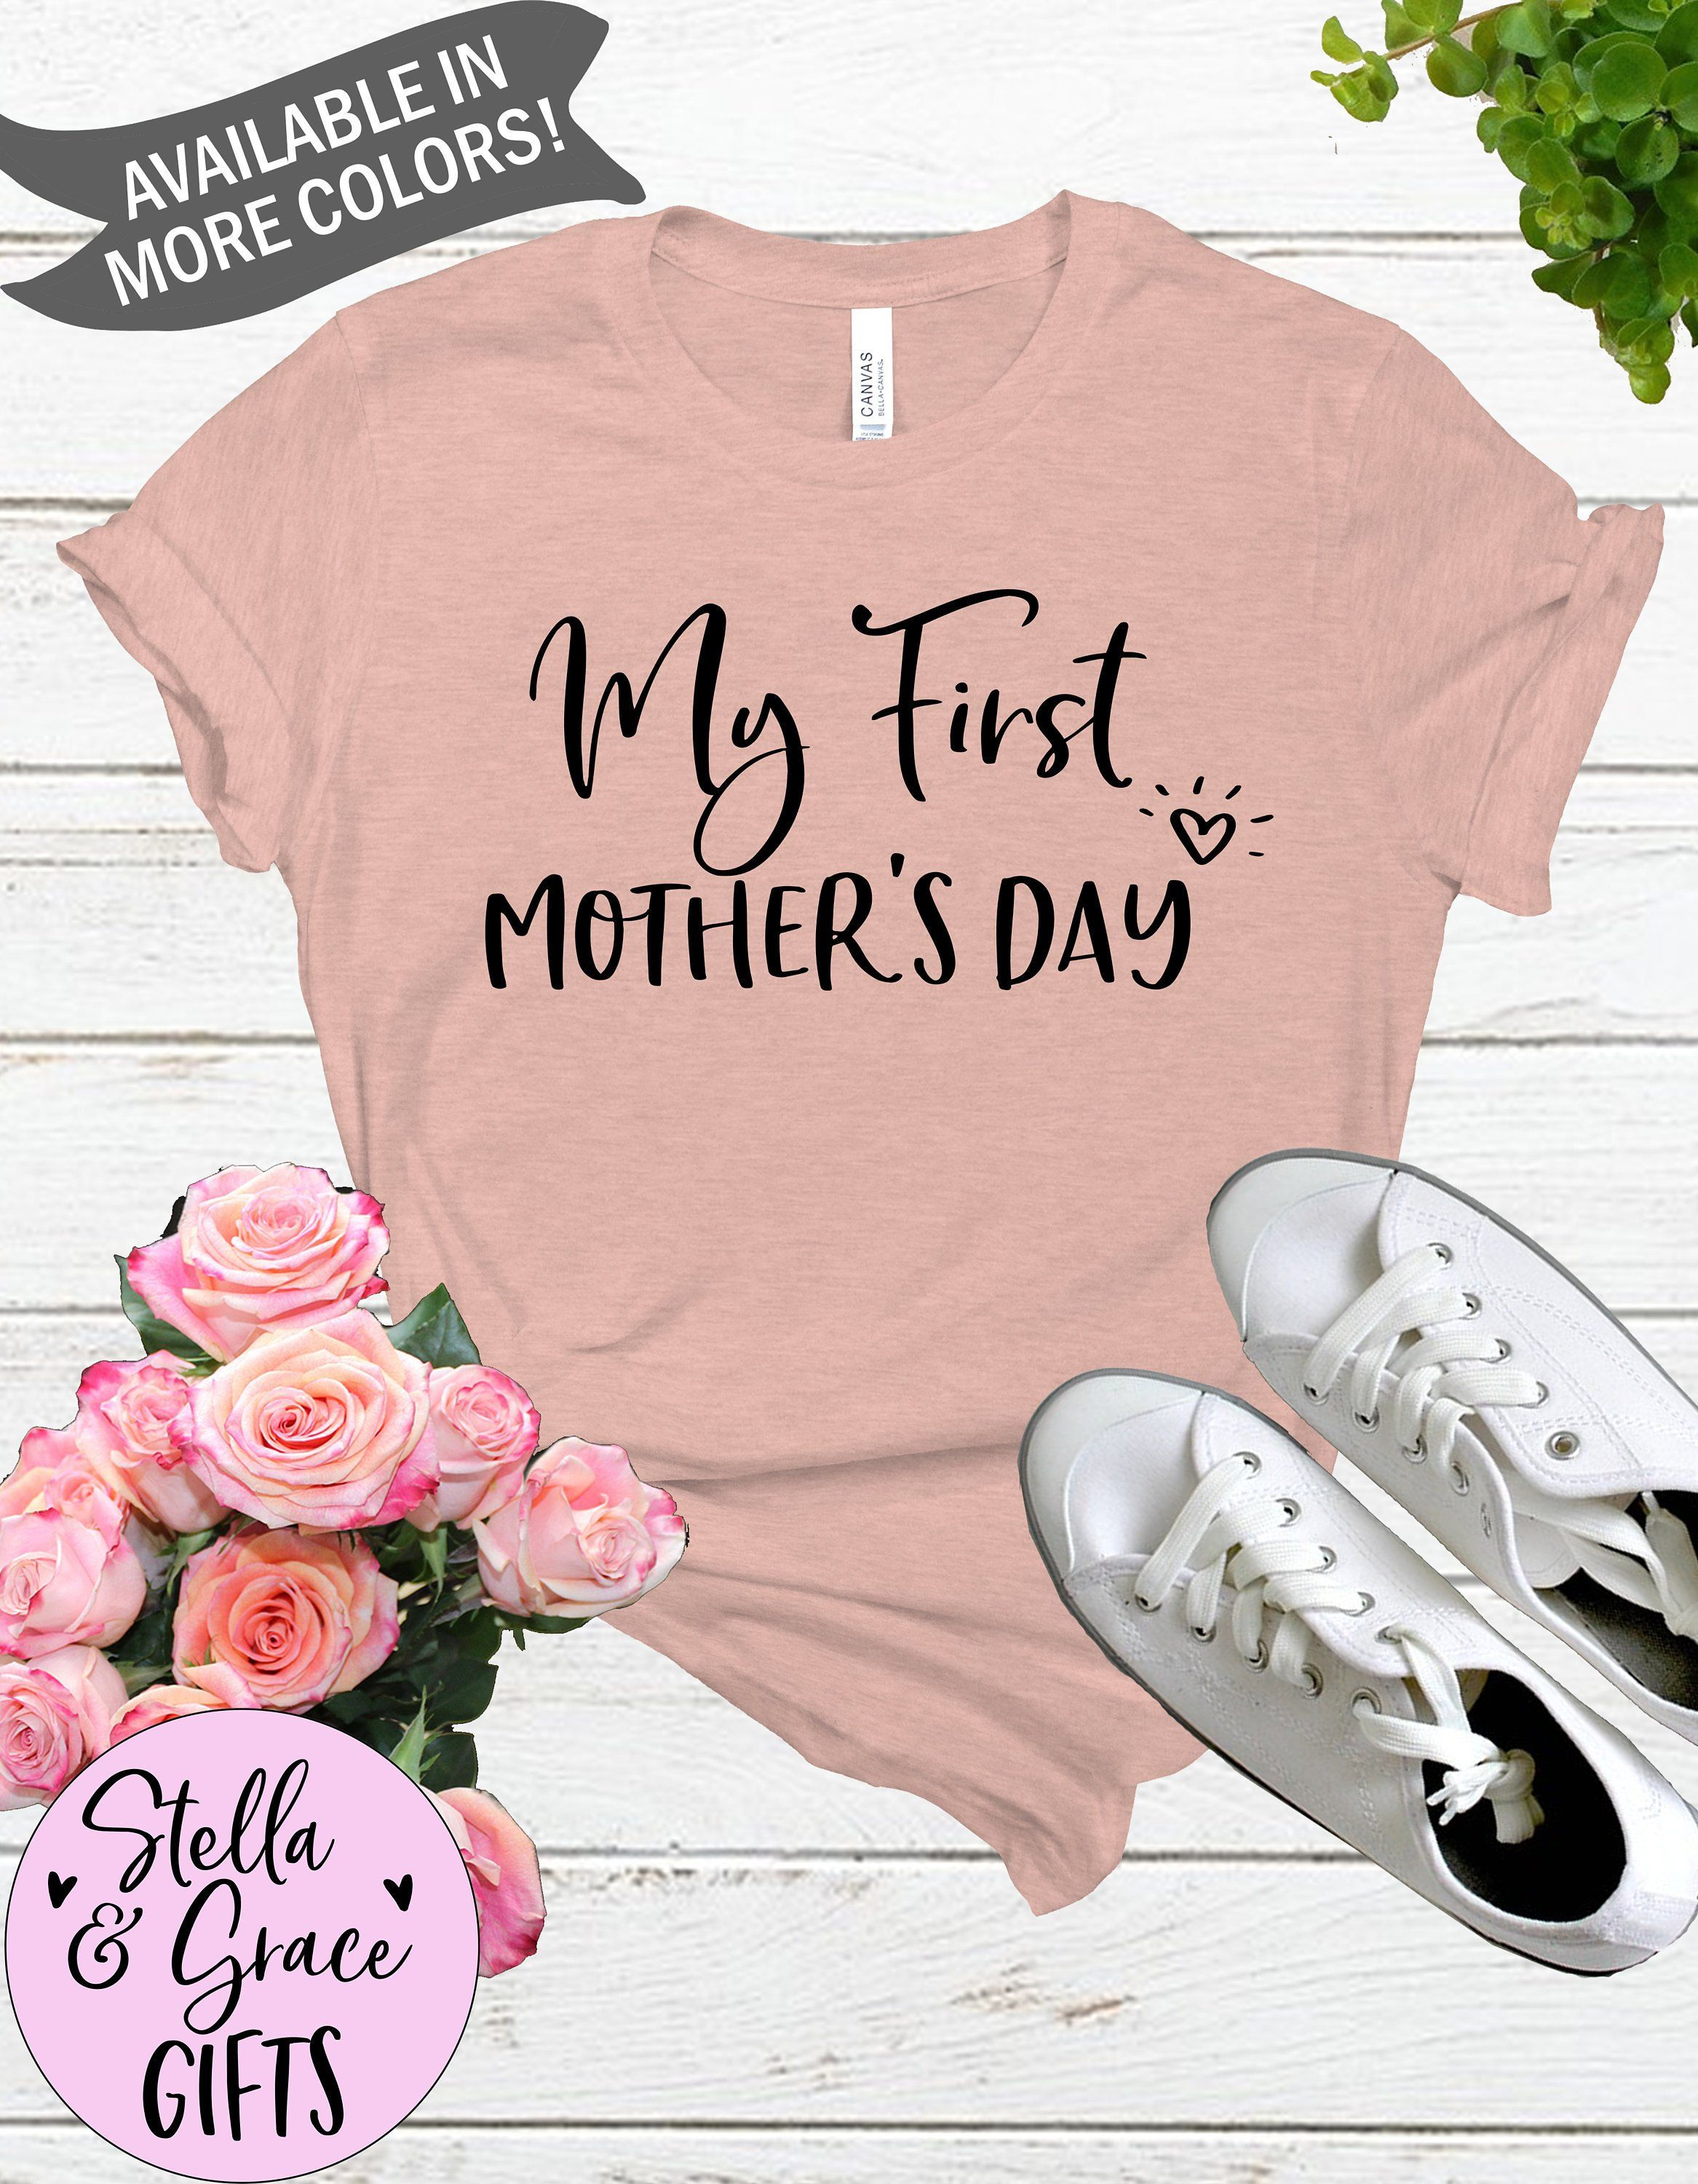 45118d95852bb My First Mother's Day Shirt - Pregnancy Announcement Shirt - Mom to be Tee  - Shirt